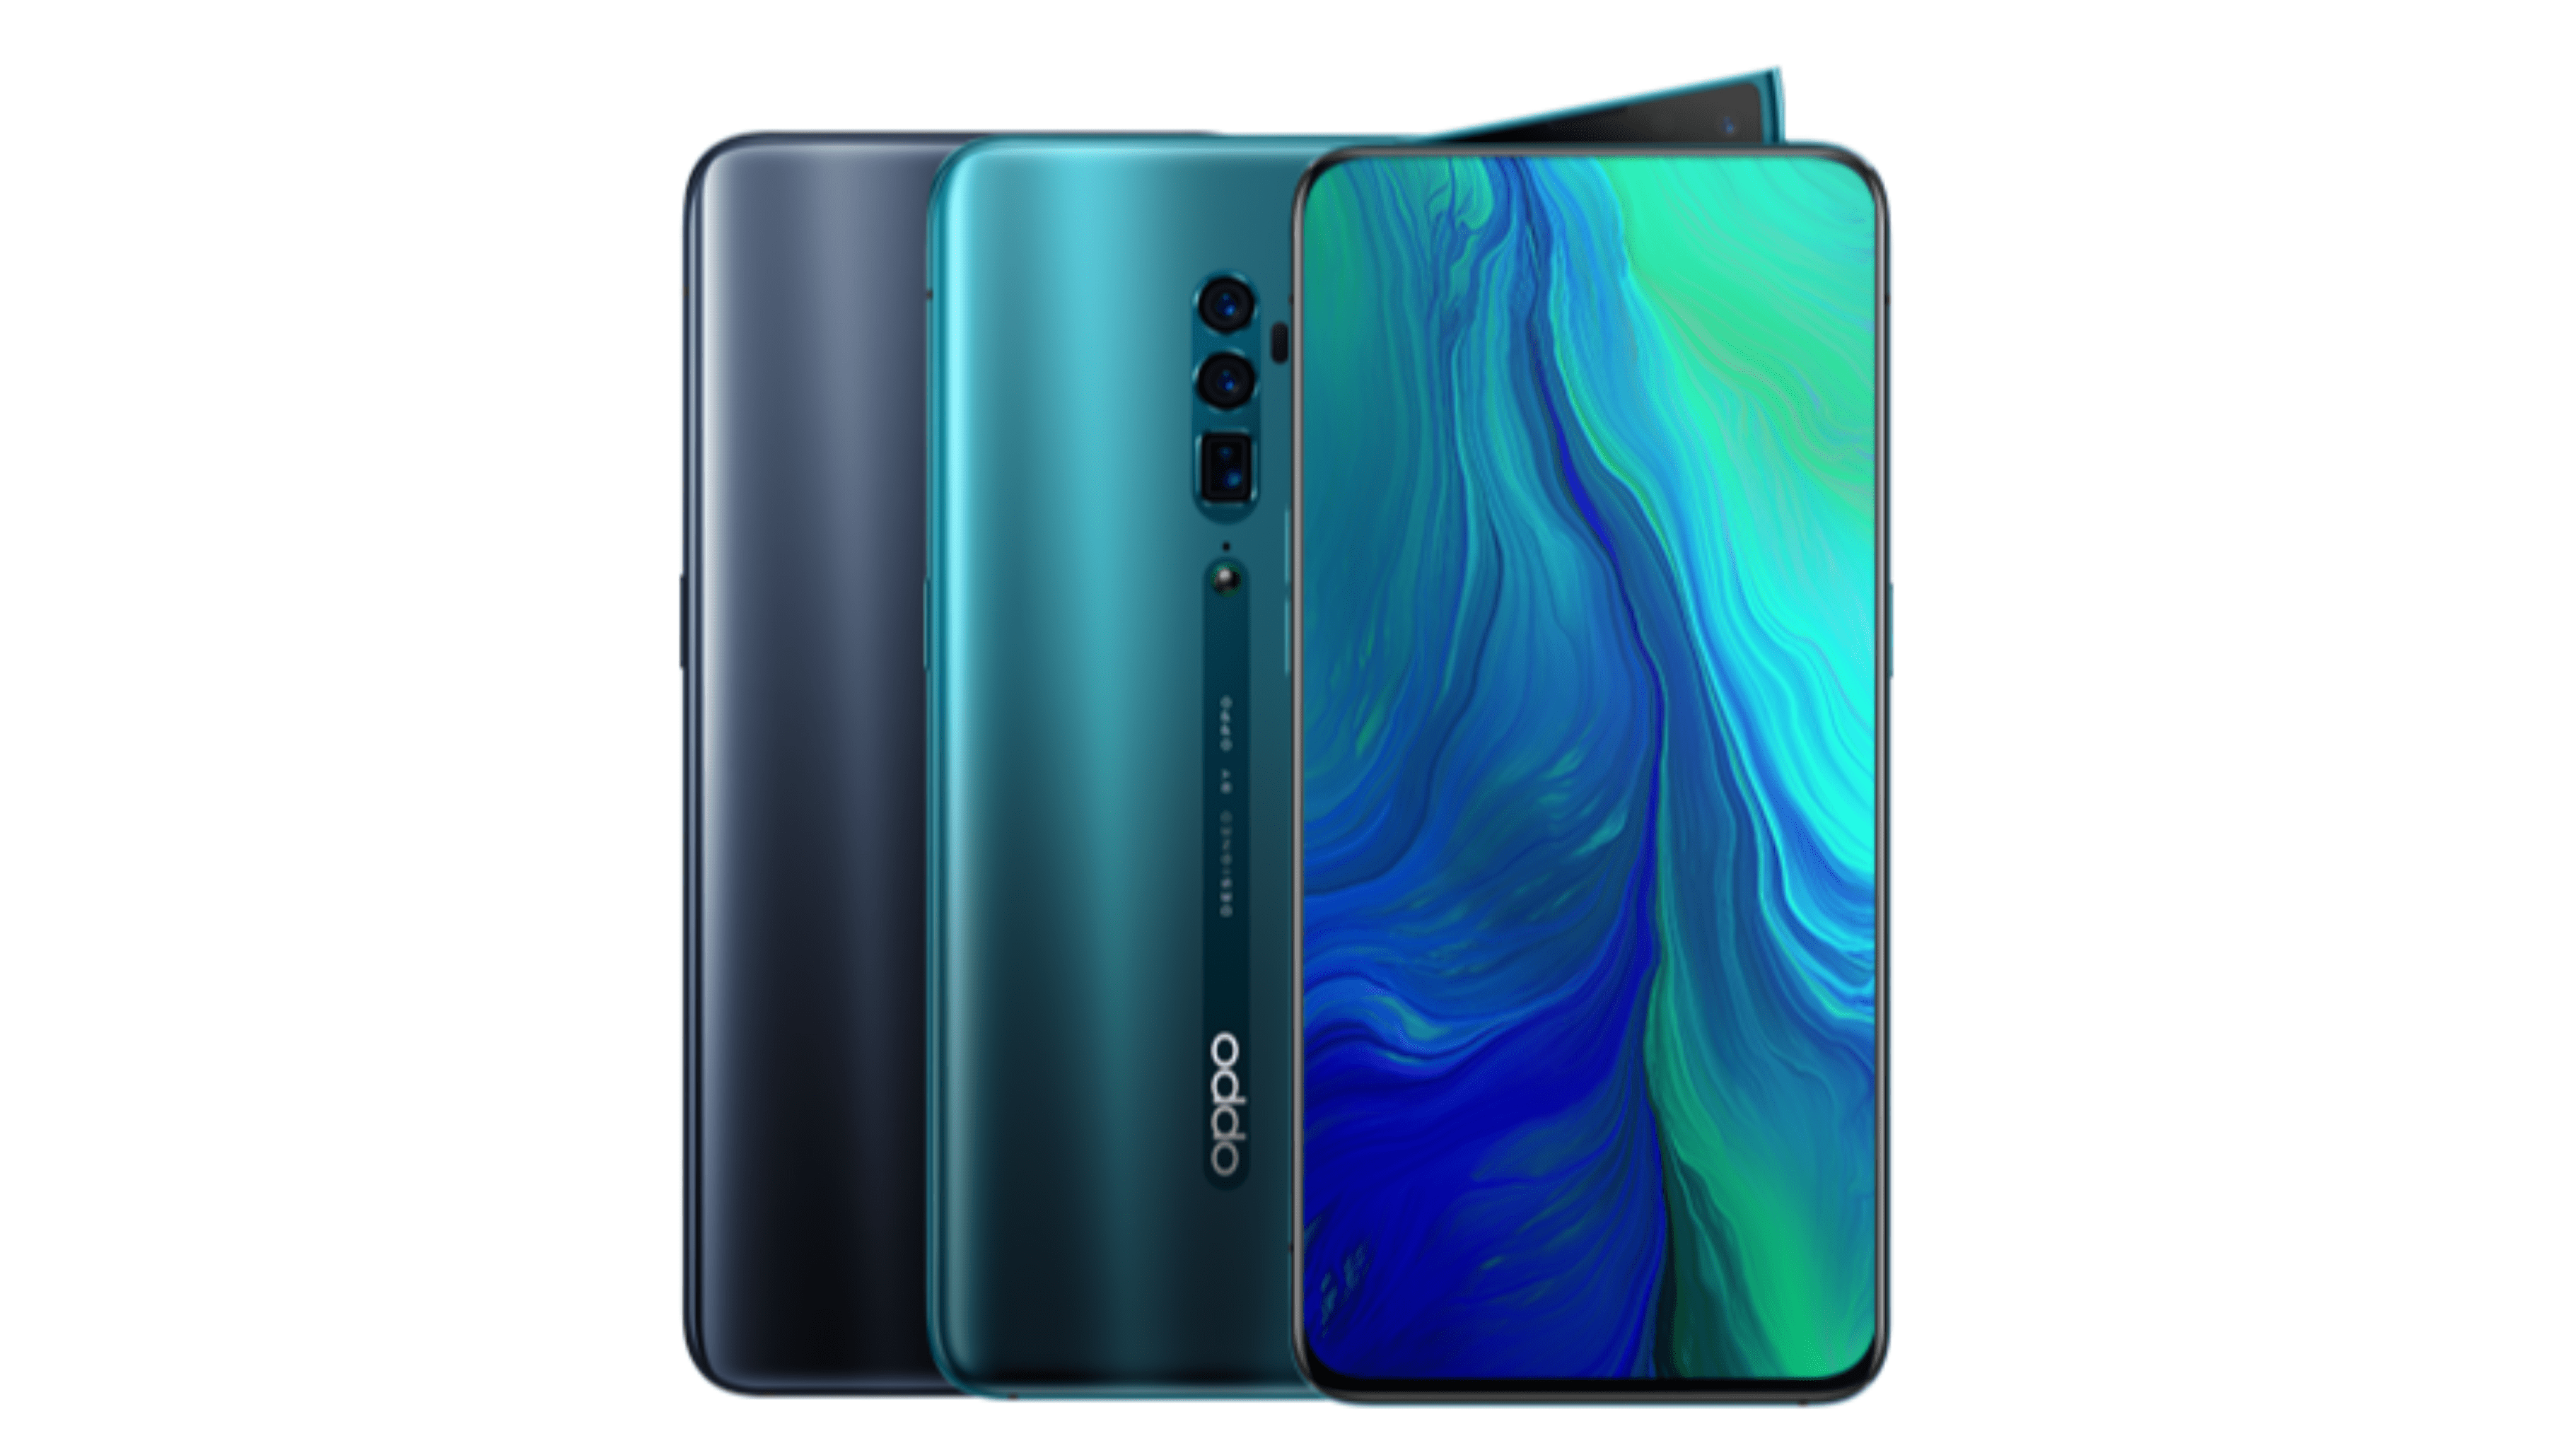 Oppo Reno 10x zoom review and price in Nigeria